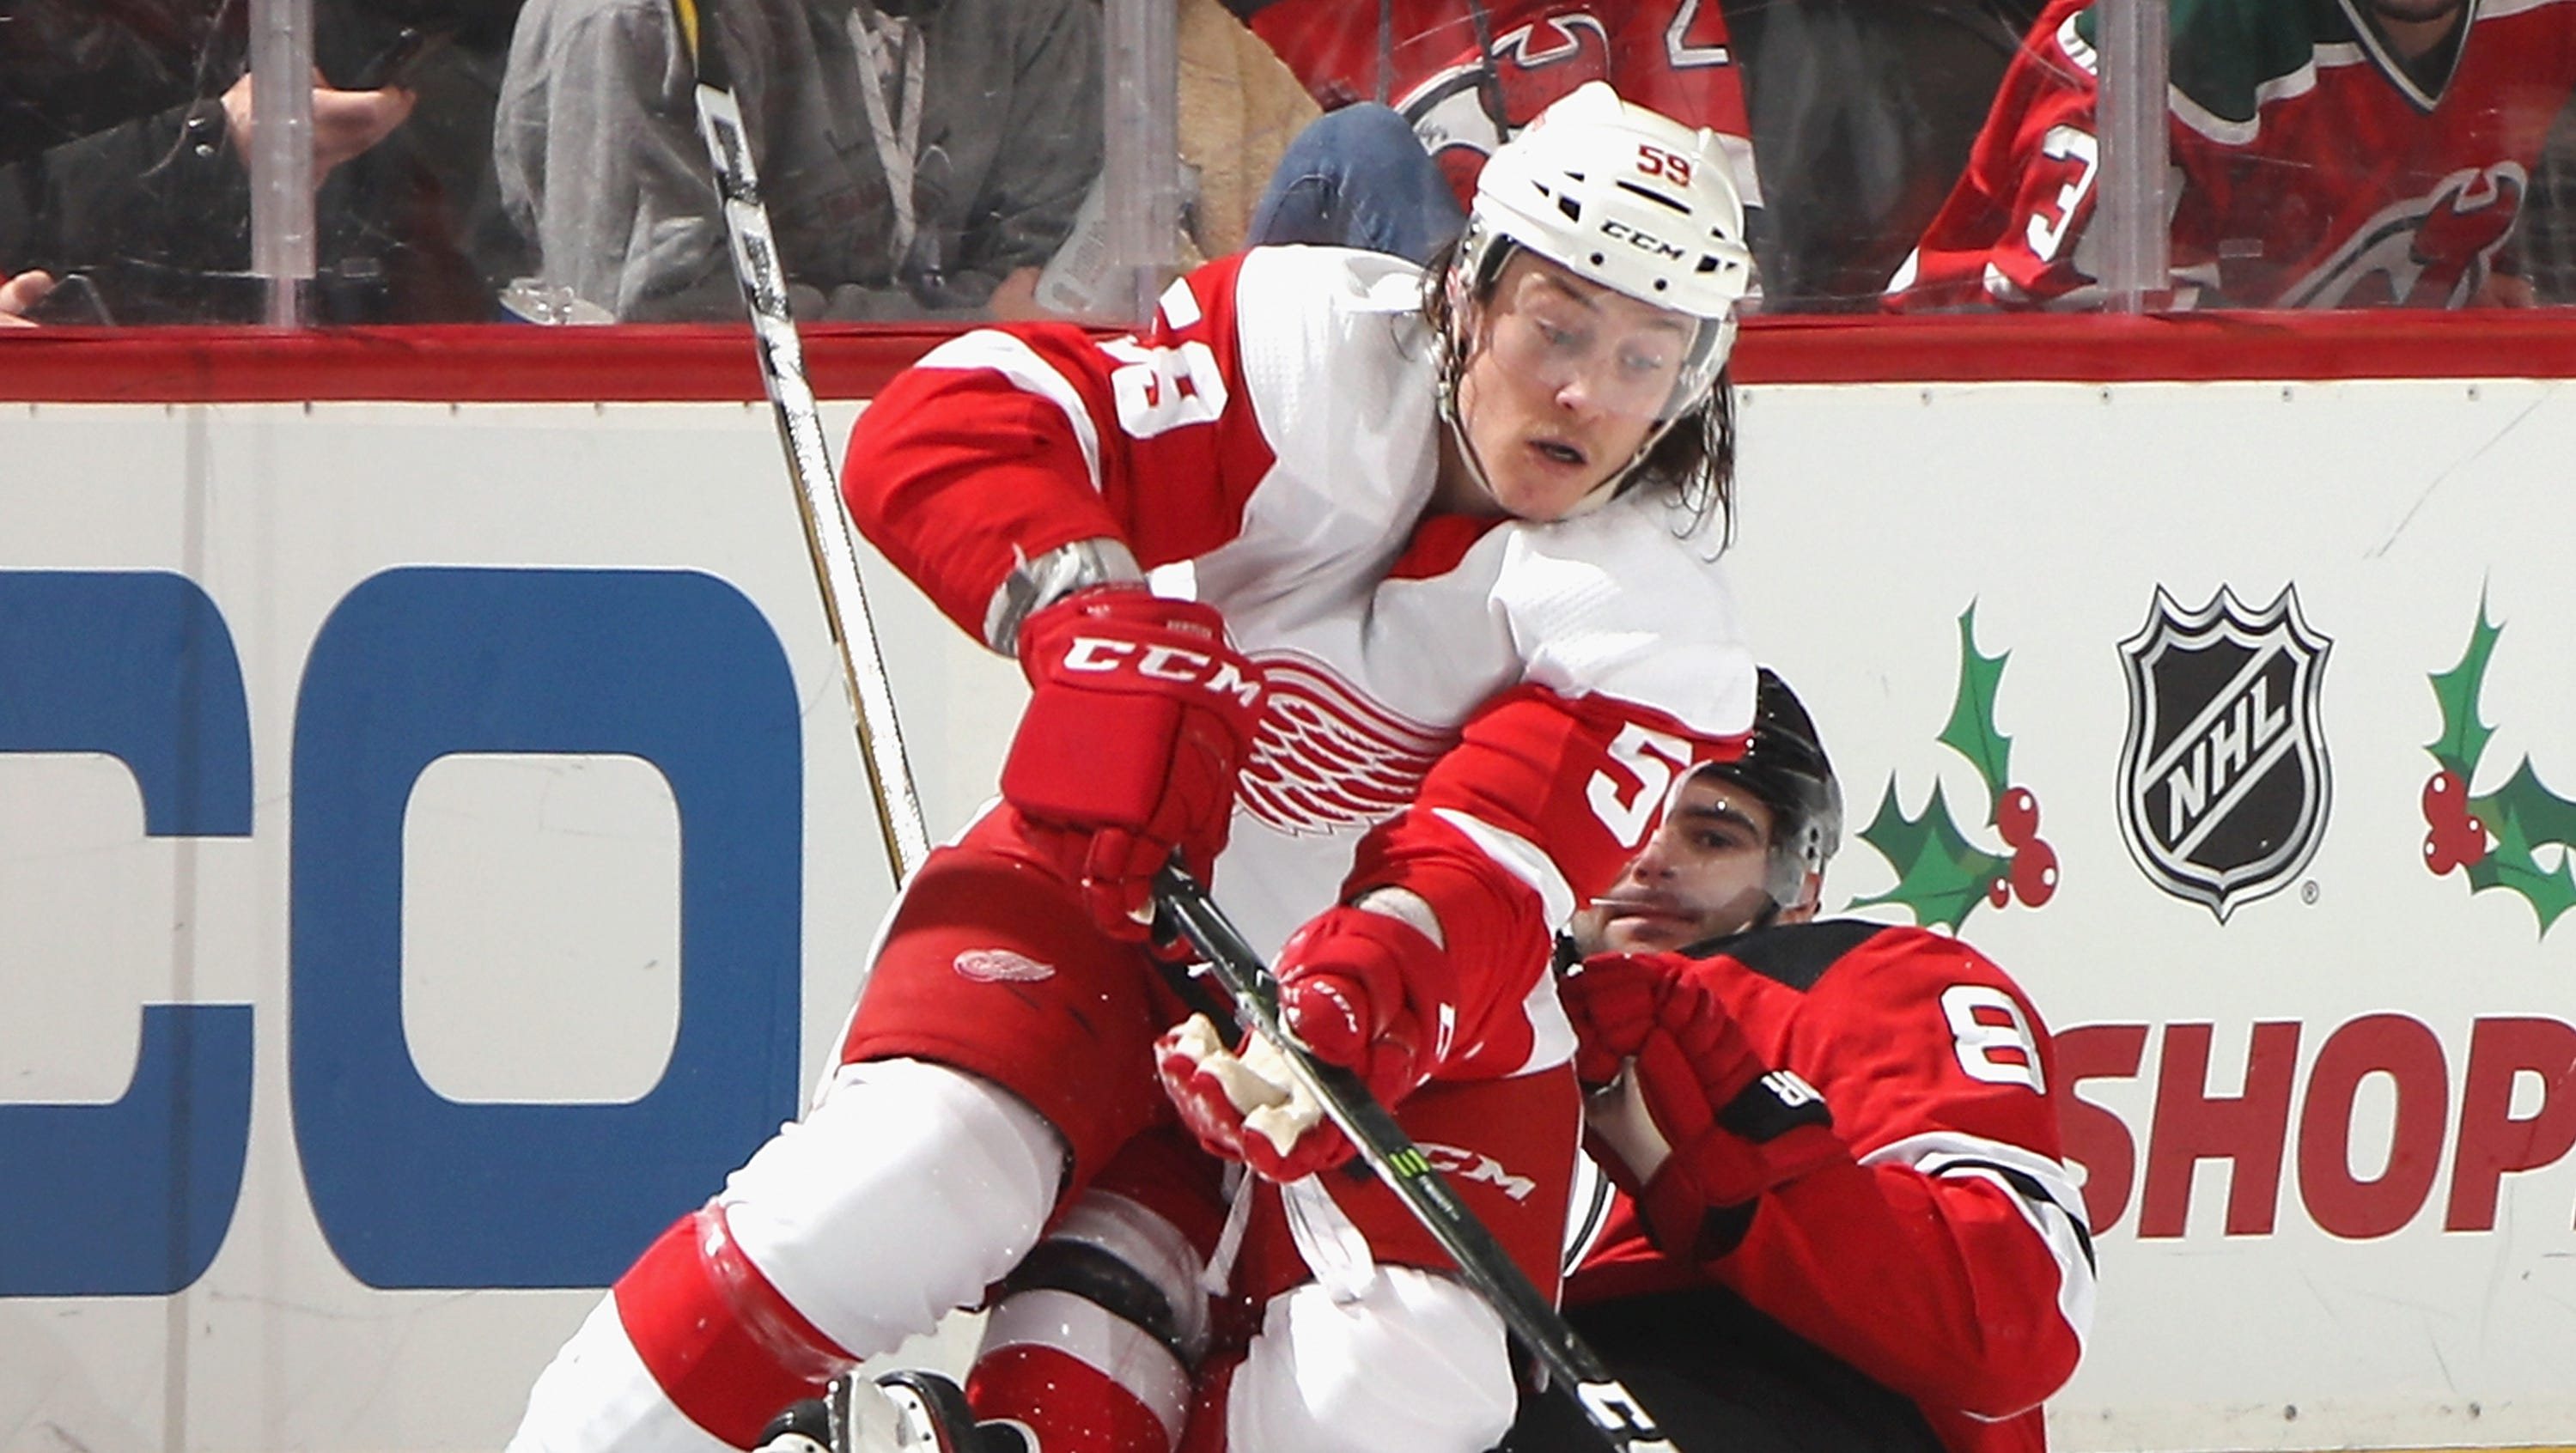 Wings defenseman Tyler Bertuzzi could see some time on the penalty kill while Darren Helm is sidelined with a shoulder injury.